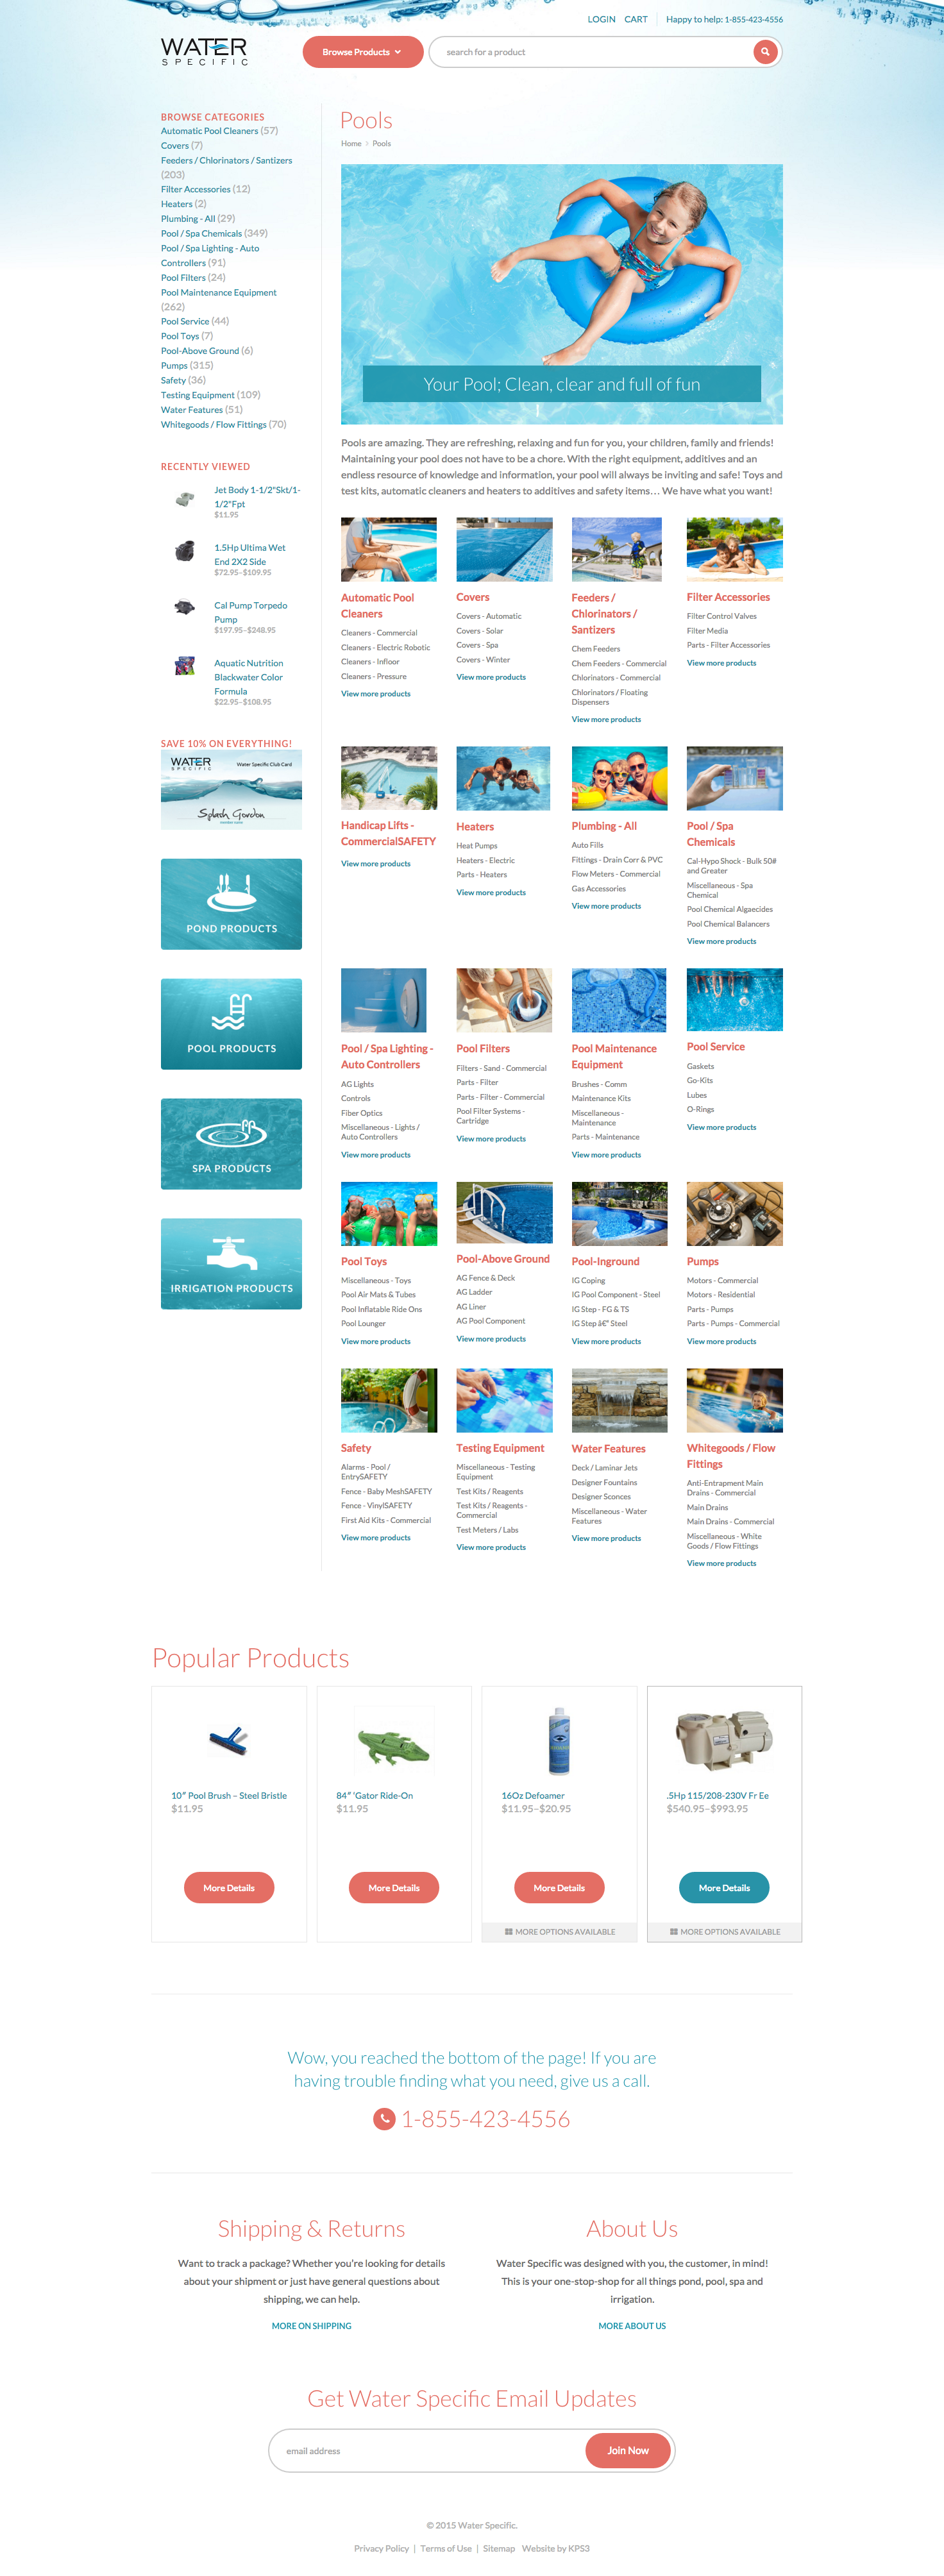 Buy Pool Products Online   Water Specific